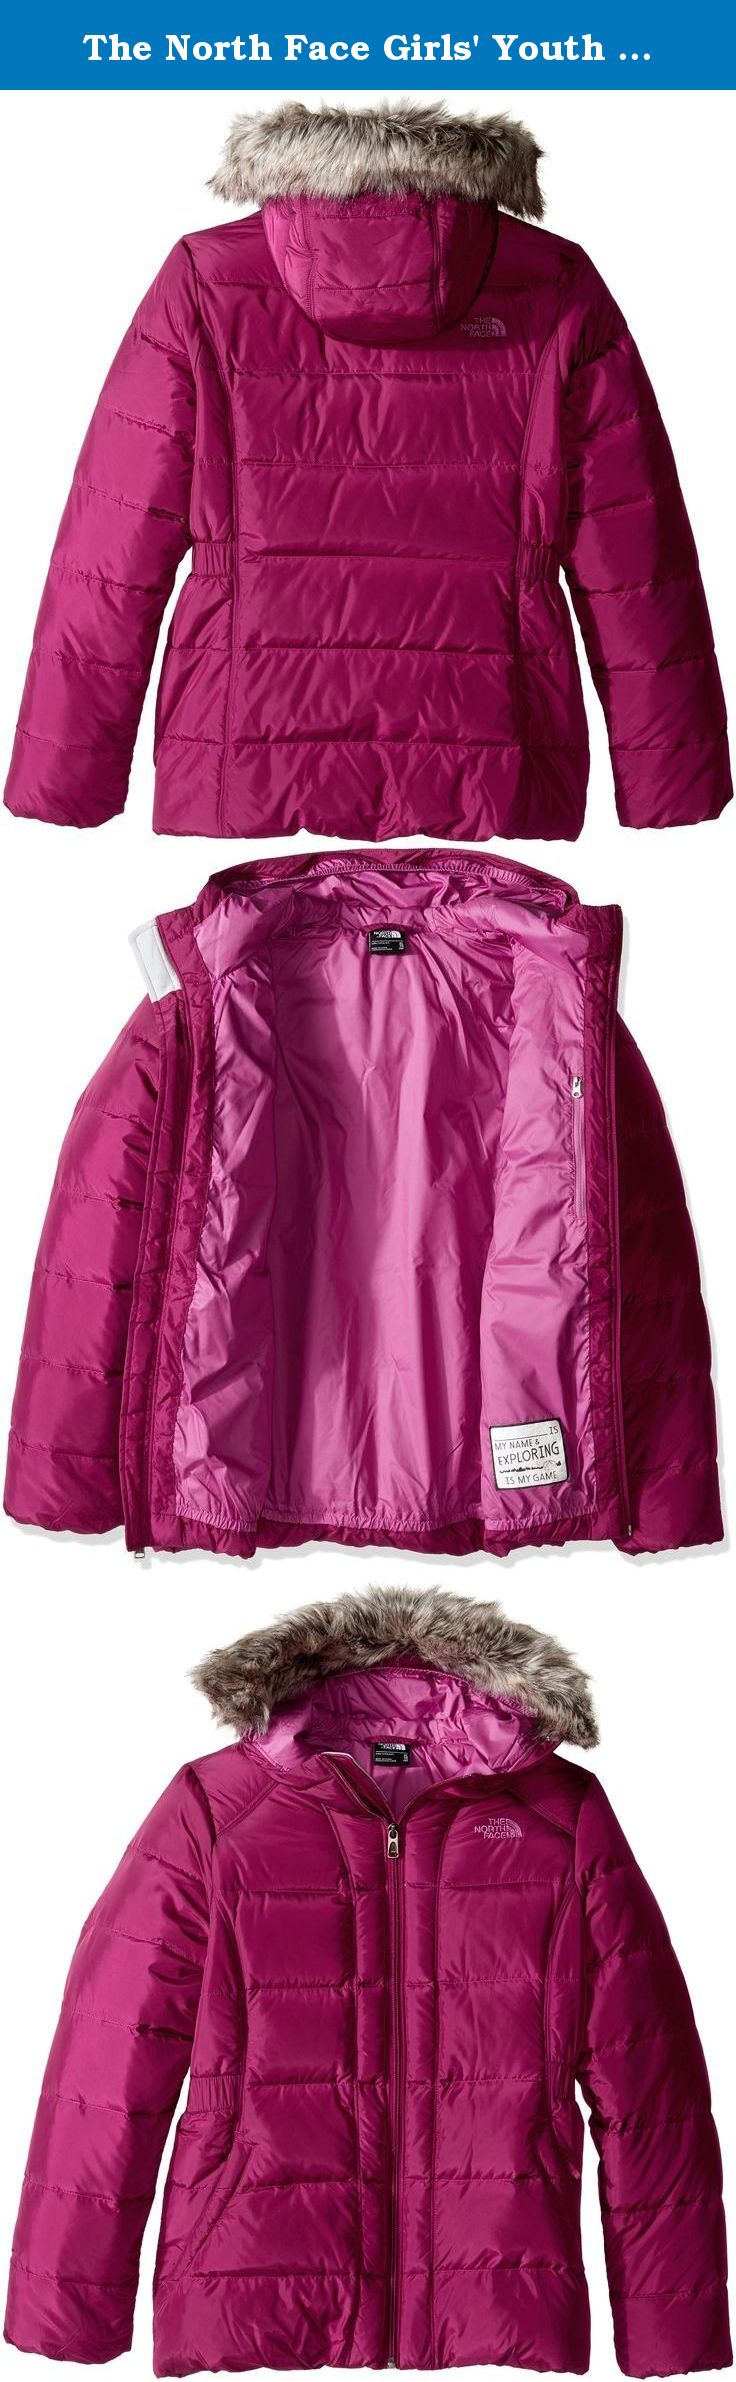 ecb10ba1a20c The North Face Girls  Youth Gotham Down Jacket (Sizes S - XL ...